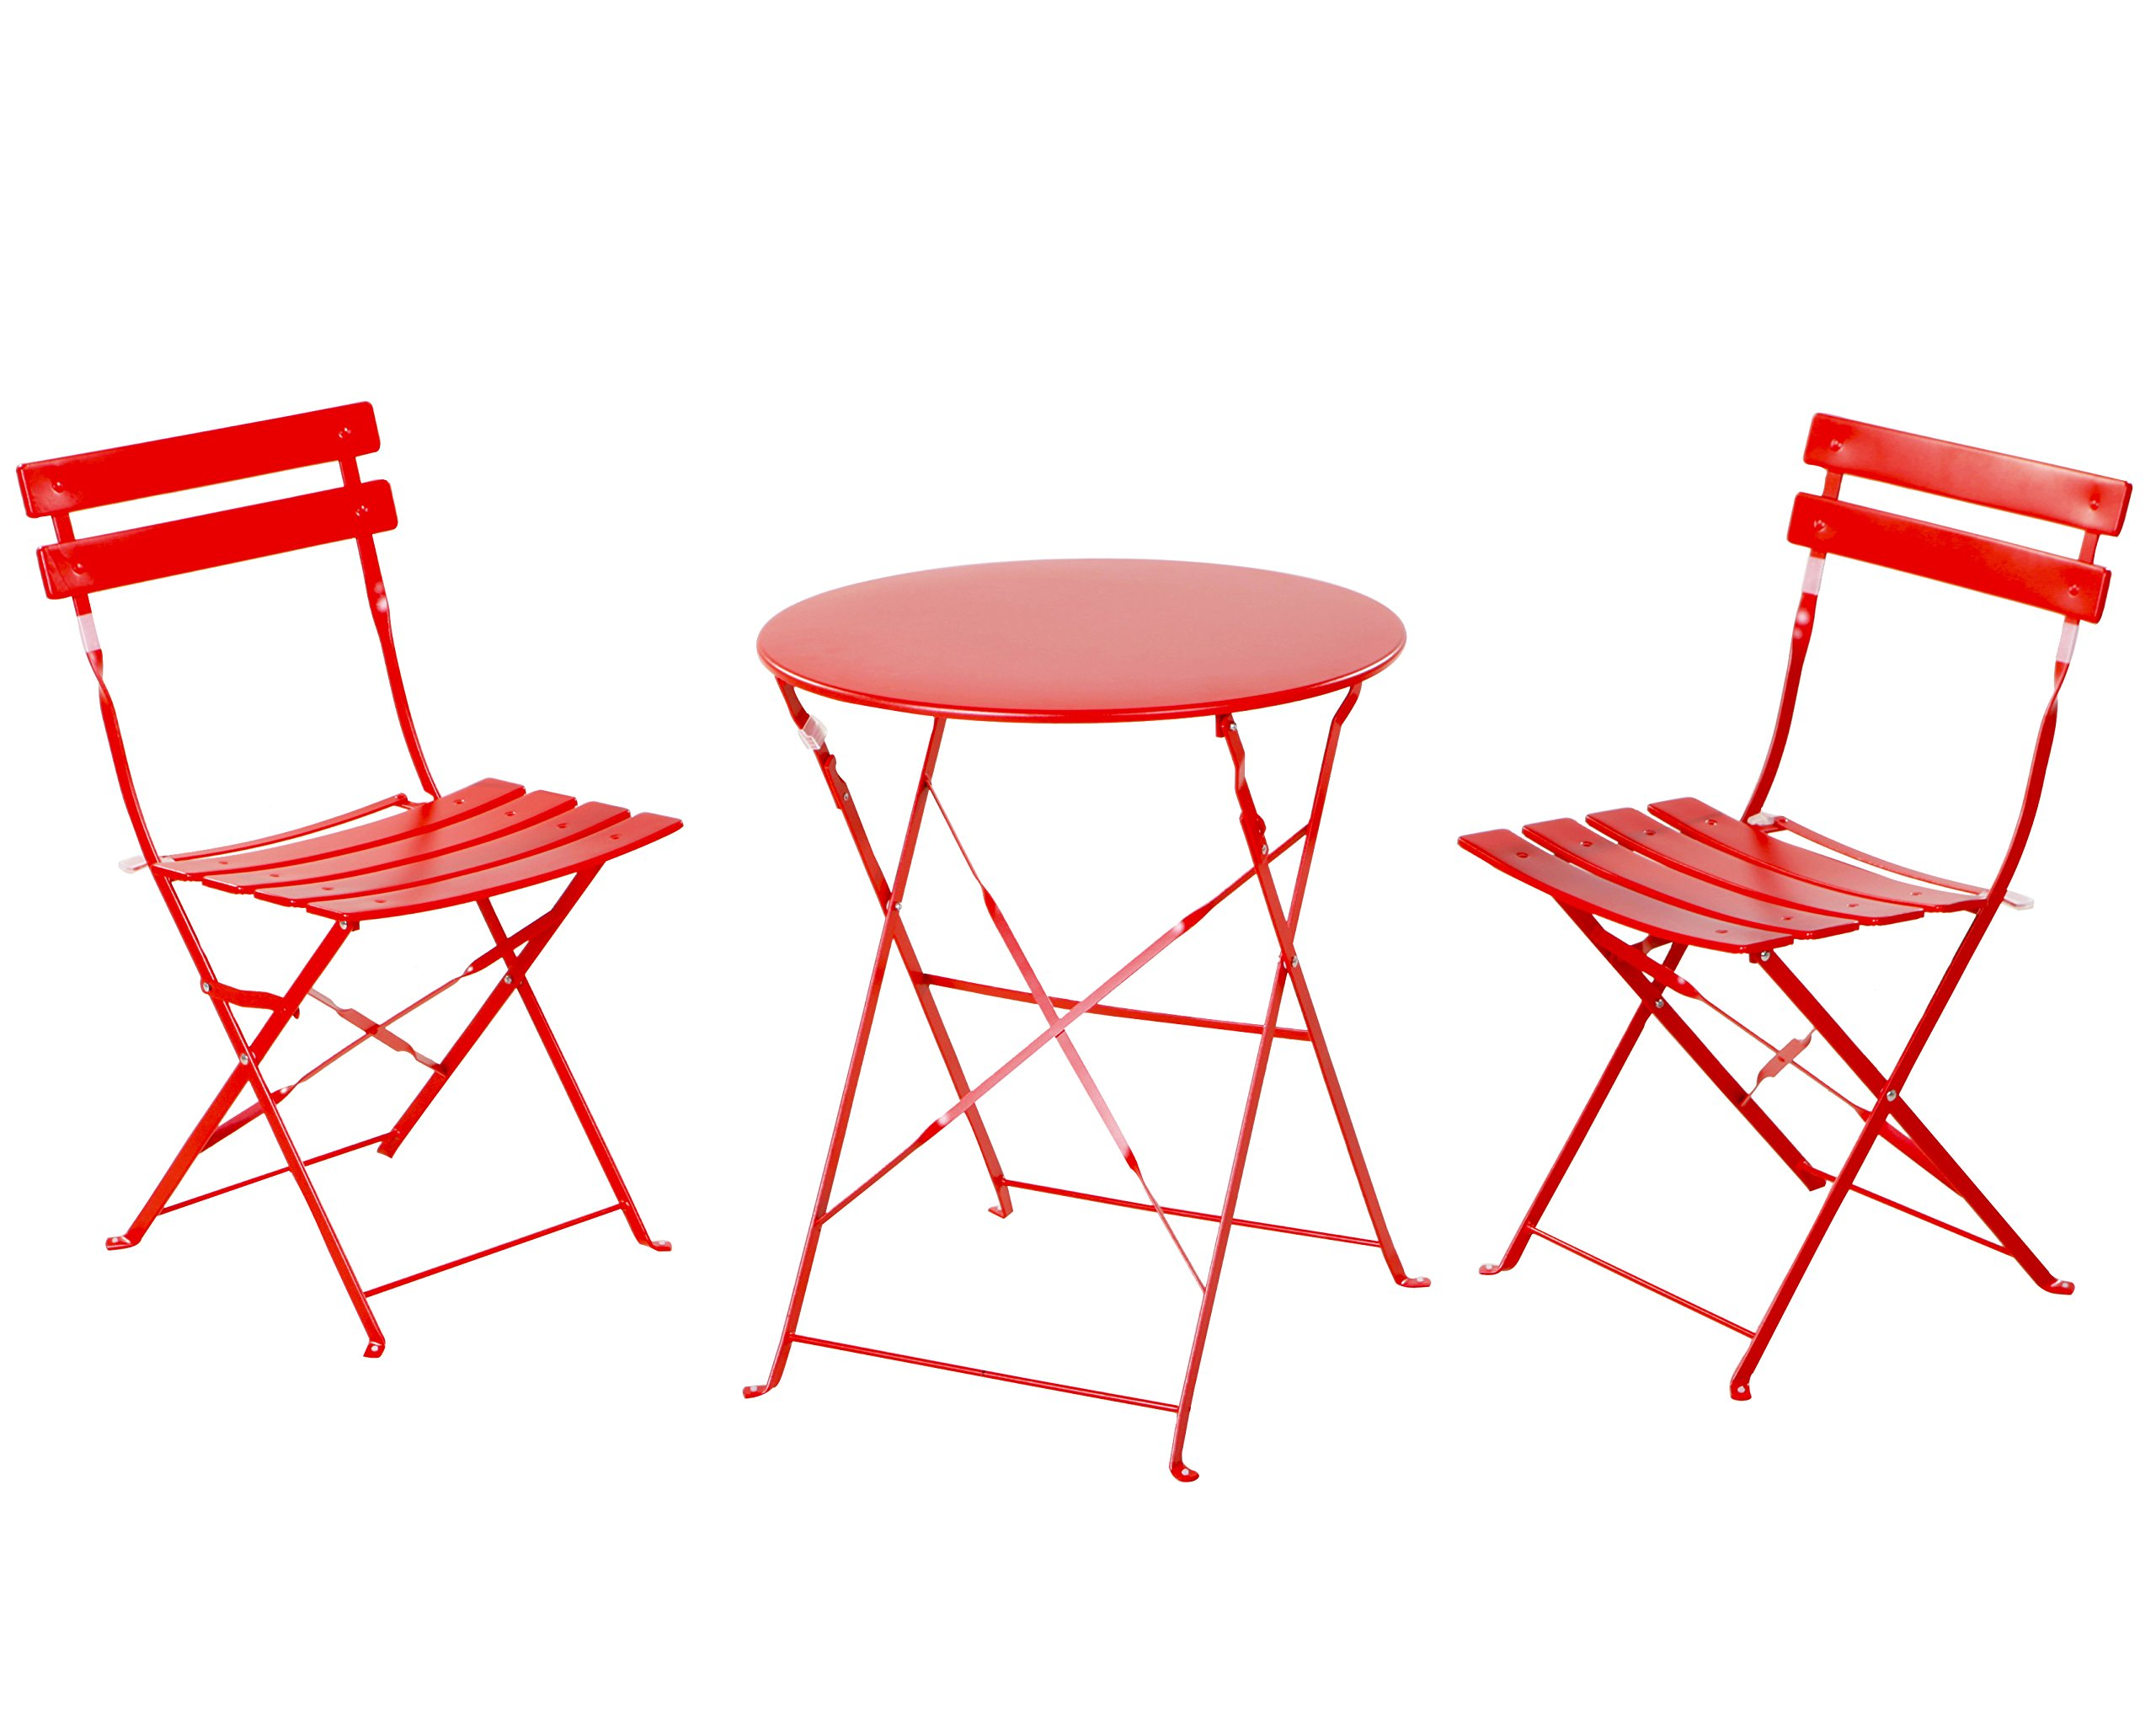 Grand patio Premium Steel Patio Bistro Set, Folding Outdoor Patio Furniture Sets, 3 Piece Patio Set of Foldable Patio Table and Chairs, Red by Grand patio